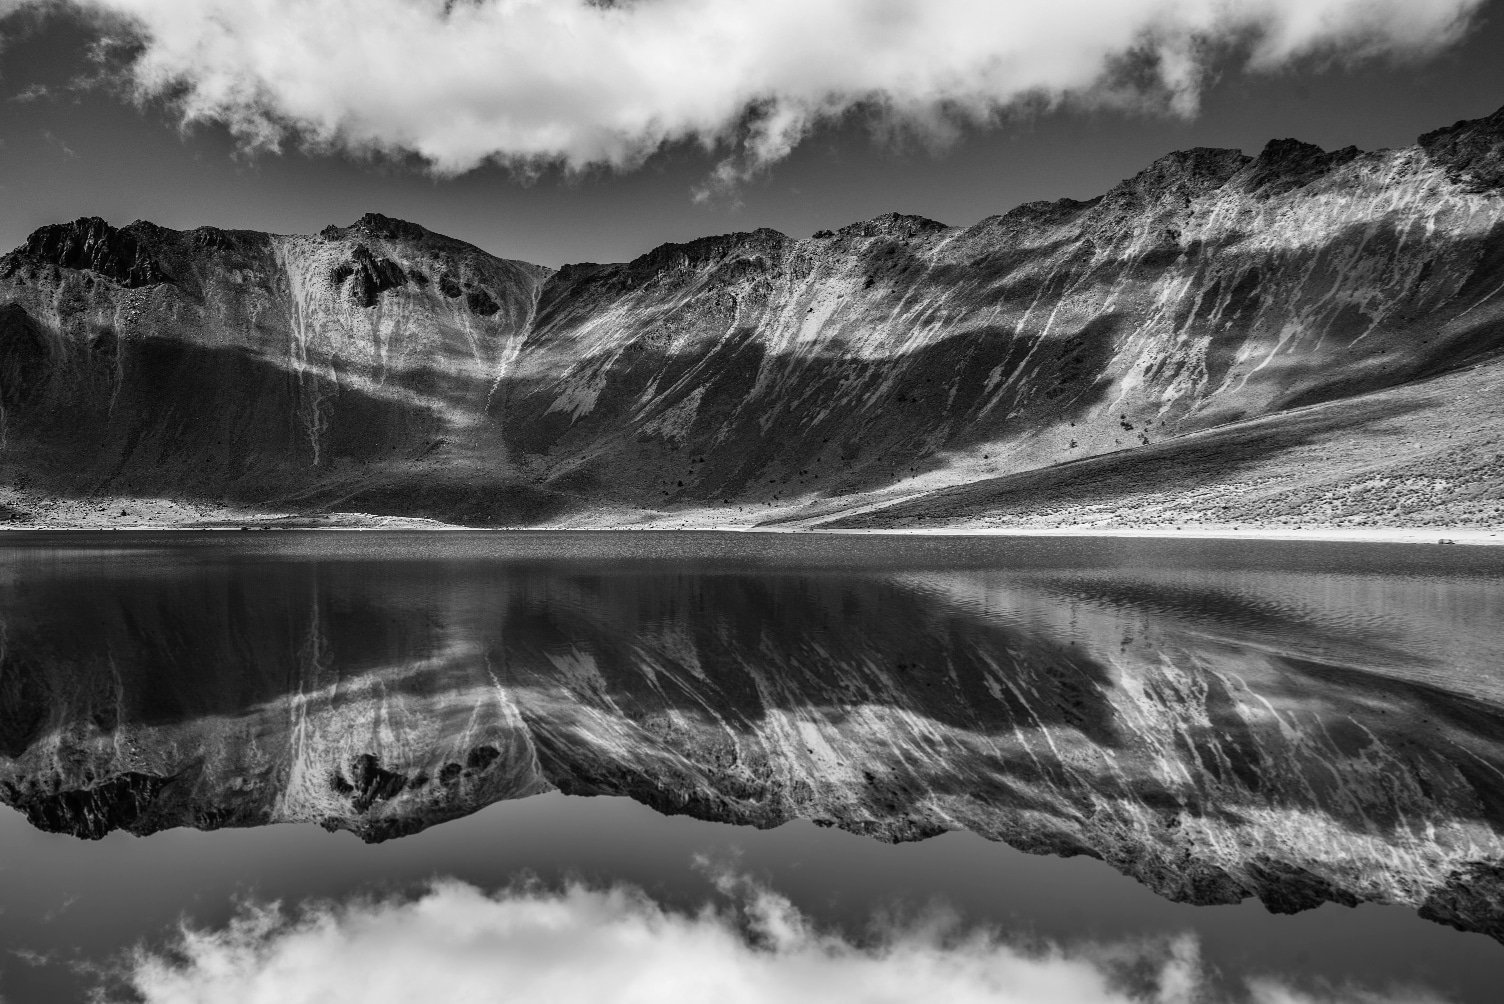 black_and_white_landscape_photography_22.jpg